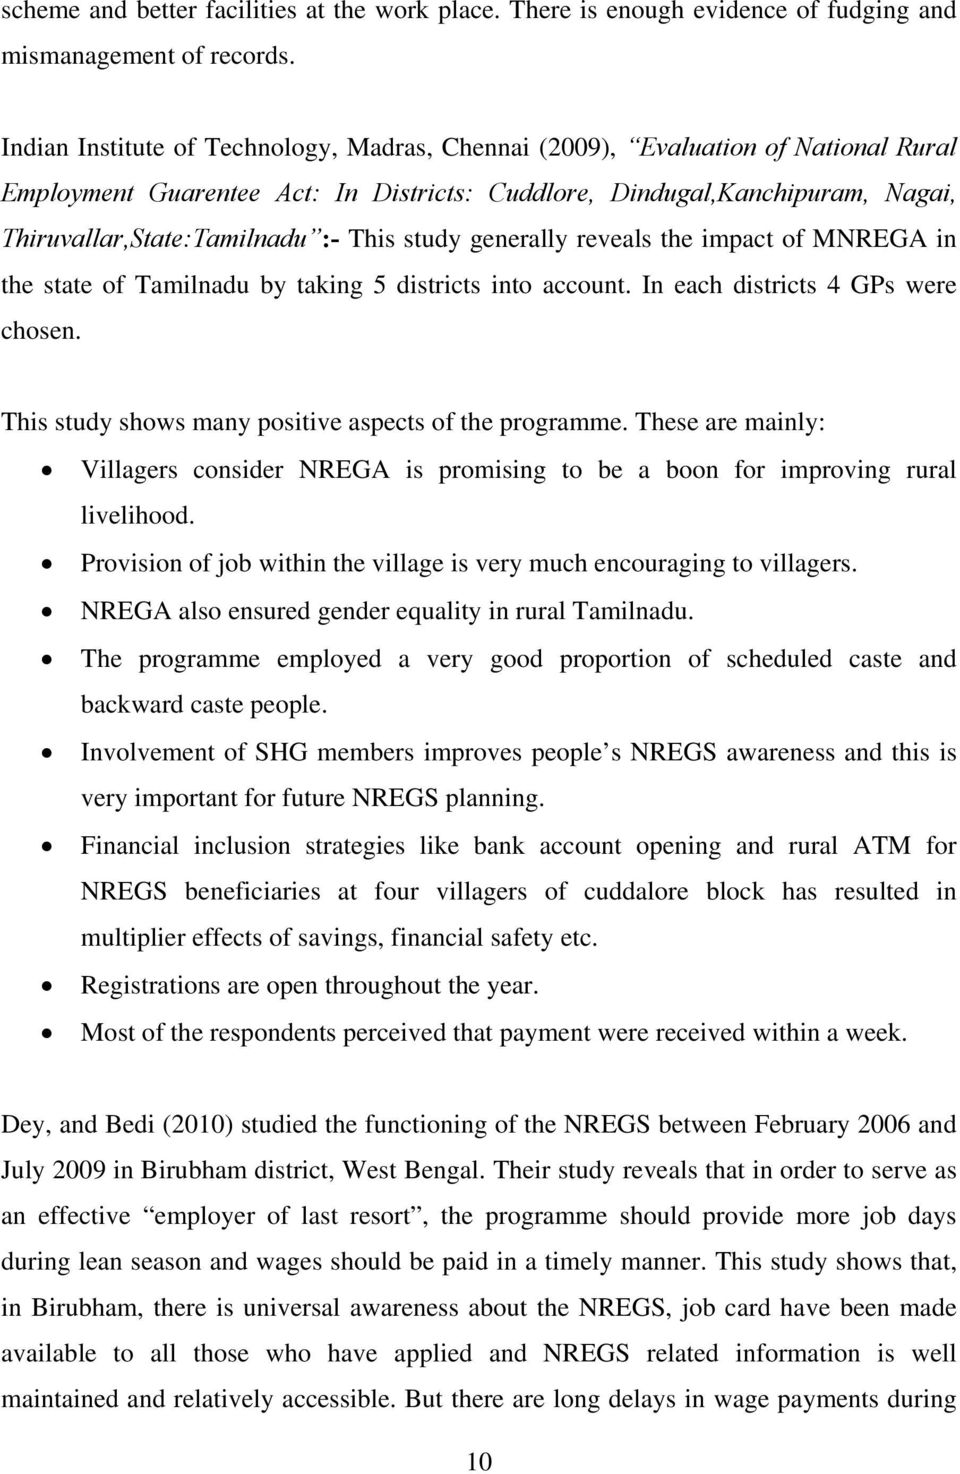 nrega thesis National rural employment guarantee scheme the national rural employment guarantee act was notified by the government of india on september, 2005 and.